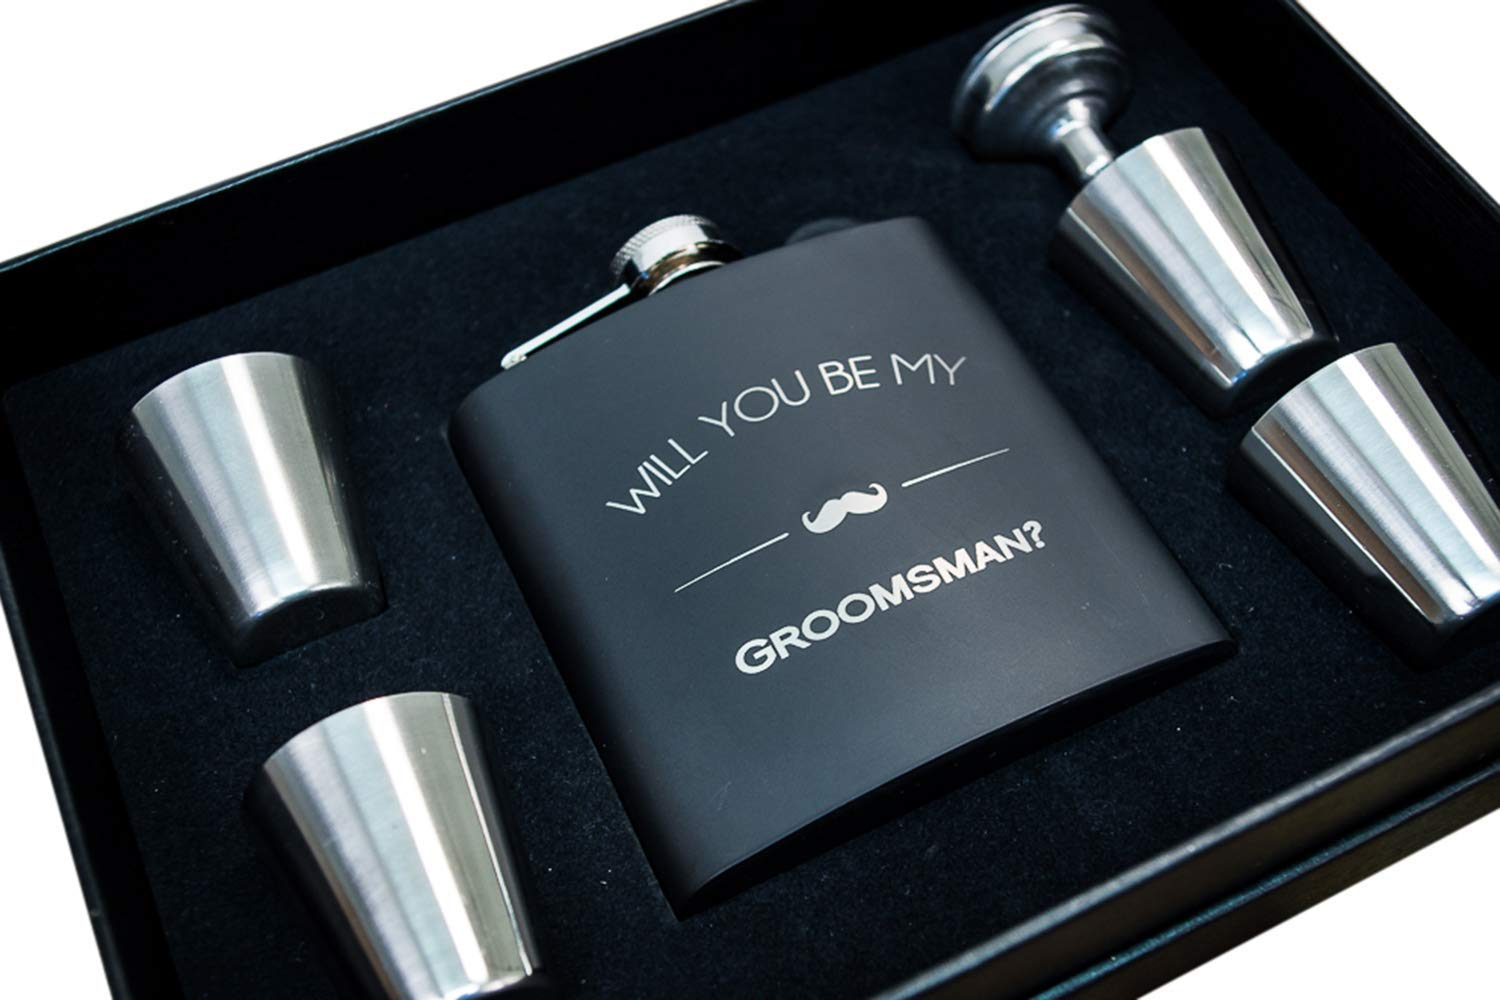 Groomsmen Proposal Gifts- Will You Be My Groomsman Gift Flask Box Set- Flasks For Men, Whiskey Flasks For Asking – Extra Thick 5mil #304 Stainless Steel, Laser Engraved, Leak Proof Groomsman 652